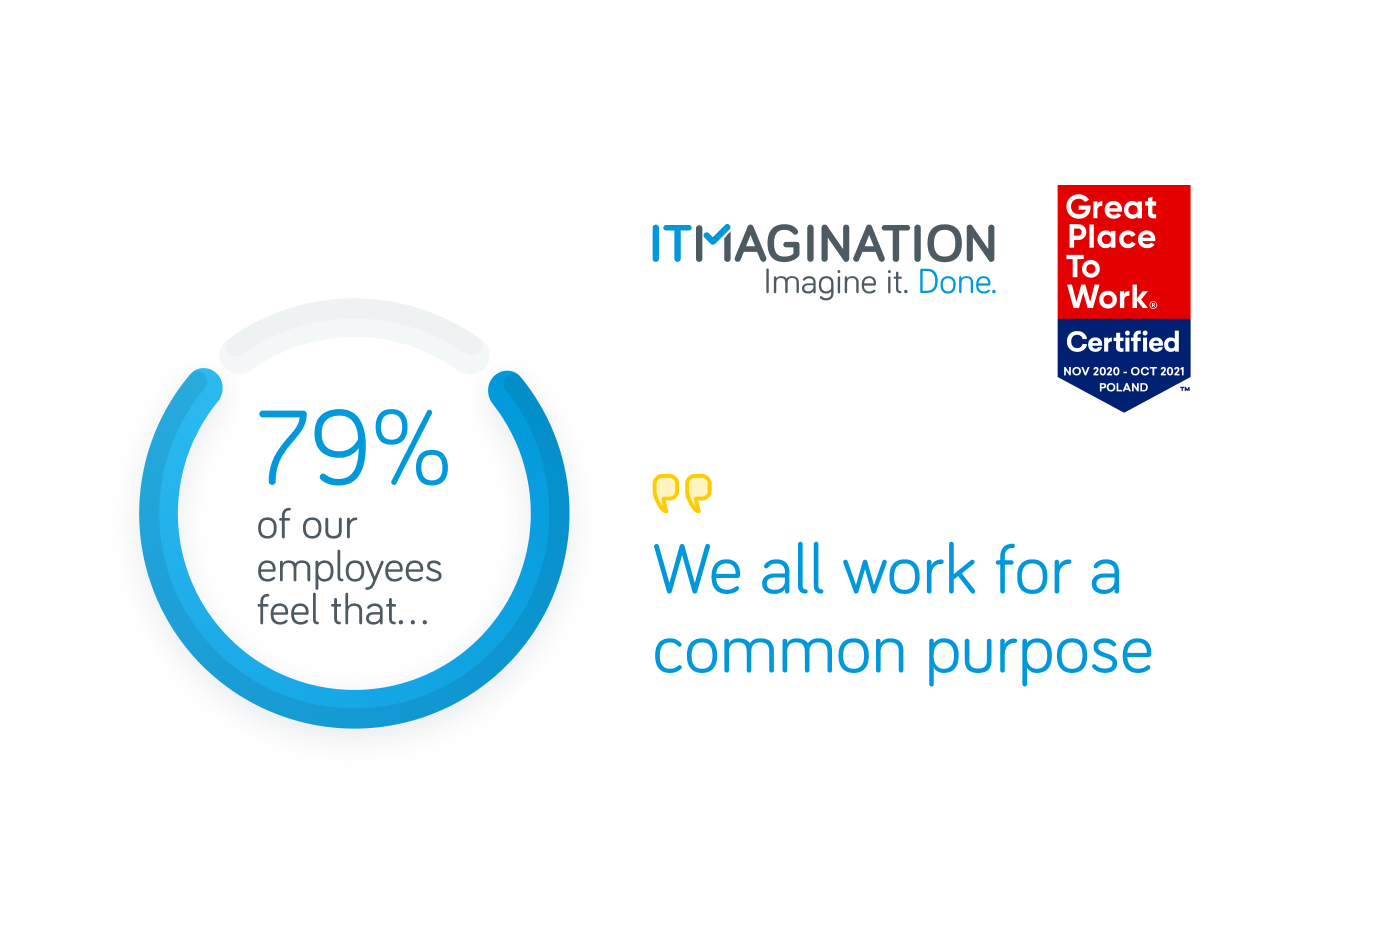 ITMAGINATION Is Awarded The Great Place To Work® Certificate For The Second Year In A Row